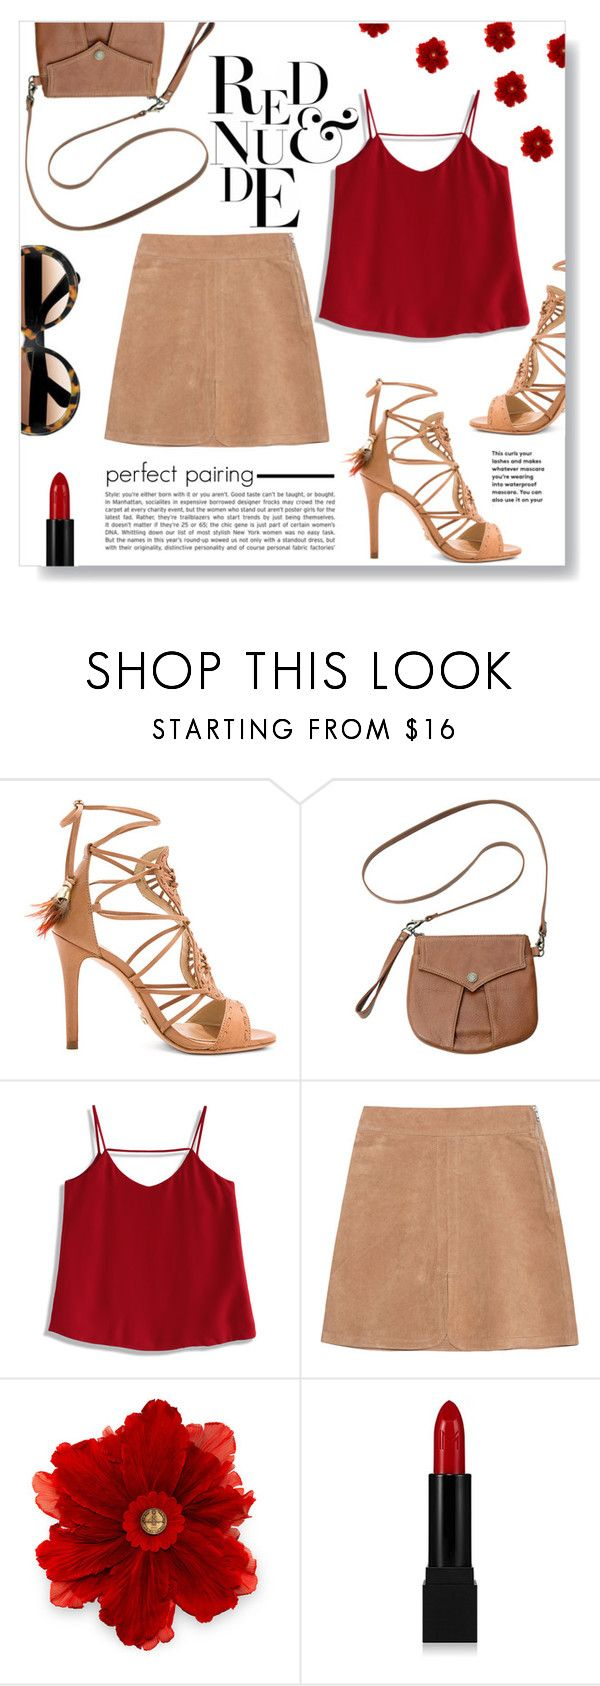 """""""// red and nude"""" by lauradeluna ❤ liked on Polyvore featuring Schutz, Hayden-Harnett, Chicwish, See by Chloé, Gucci, Forever 21, Summer, red, skirt and sandals"""